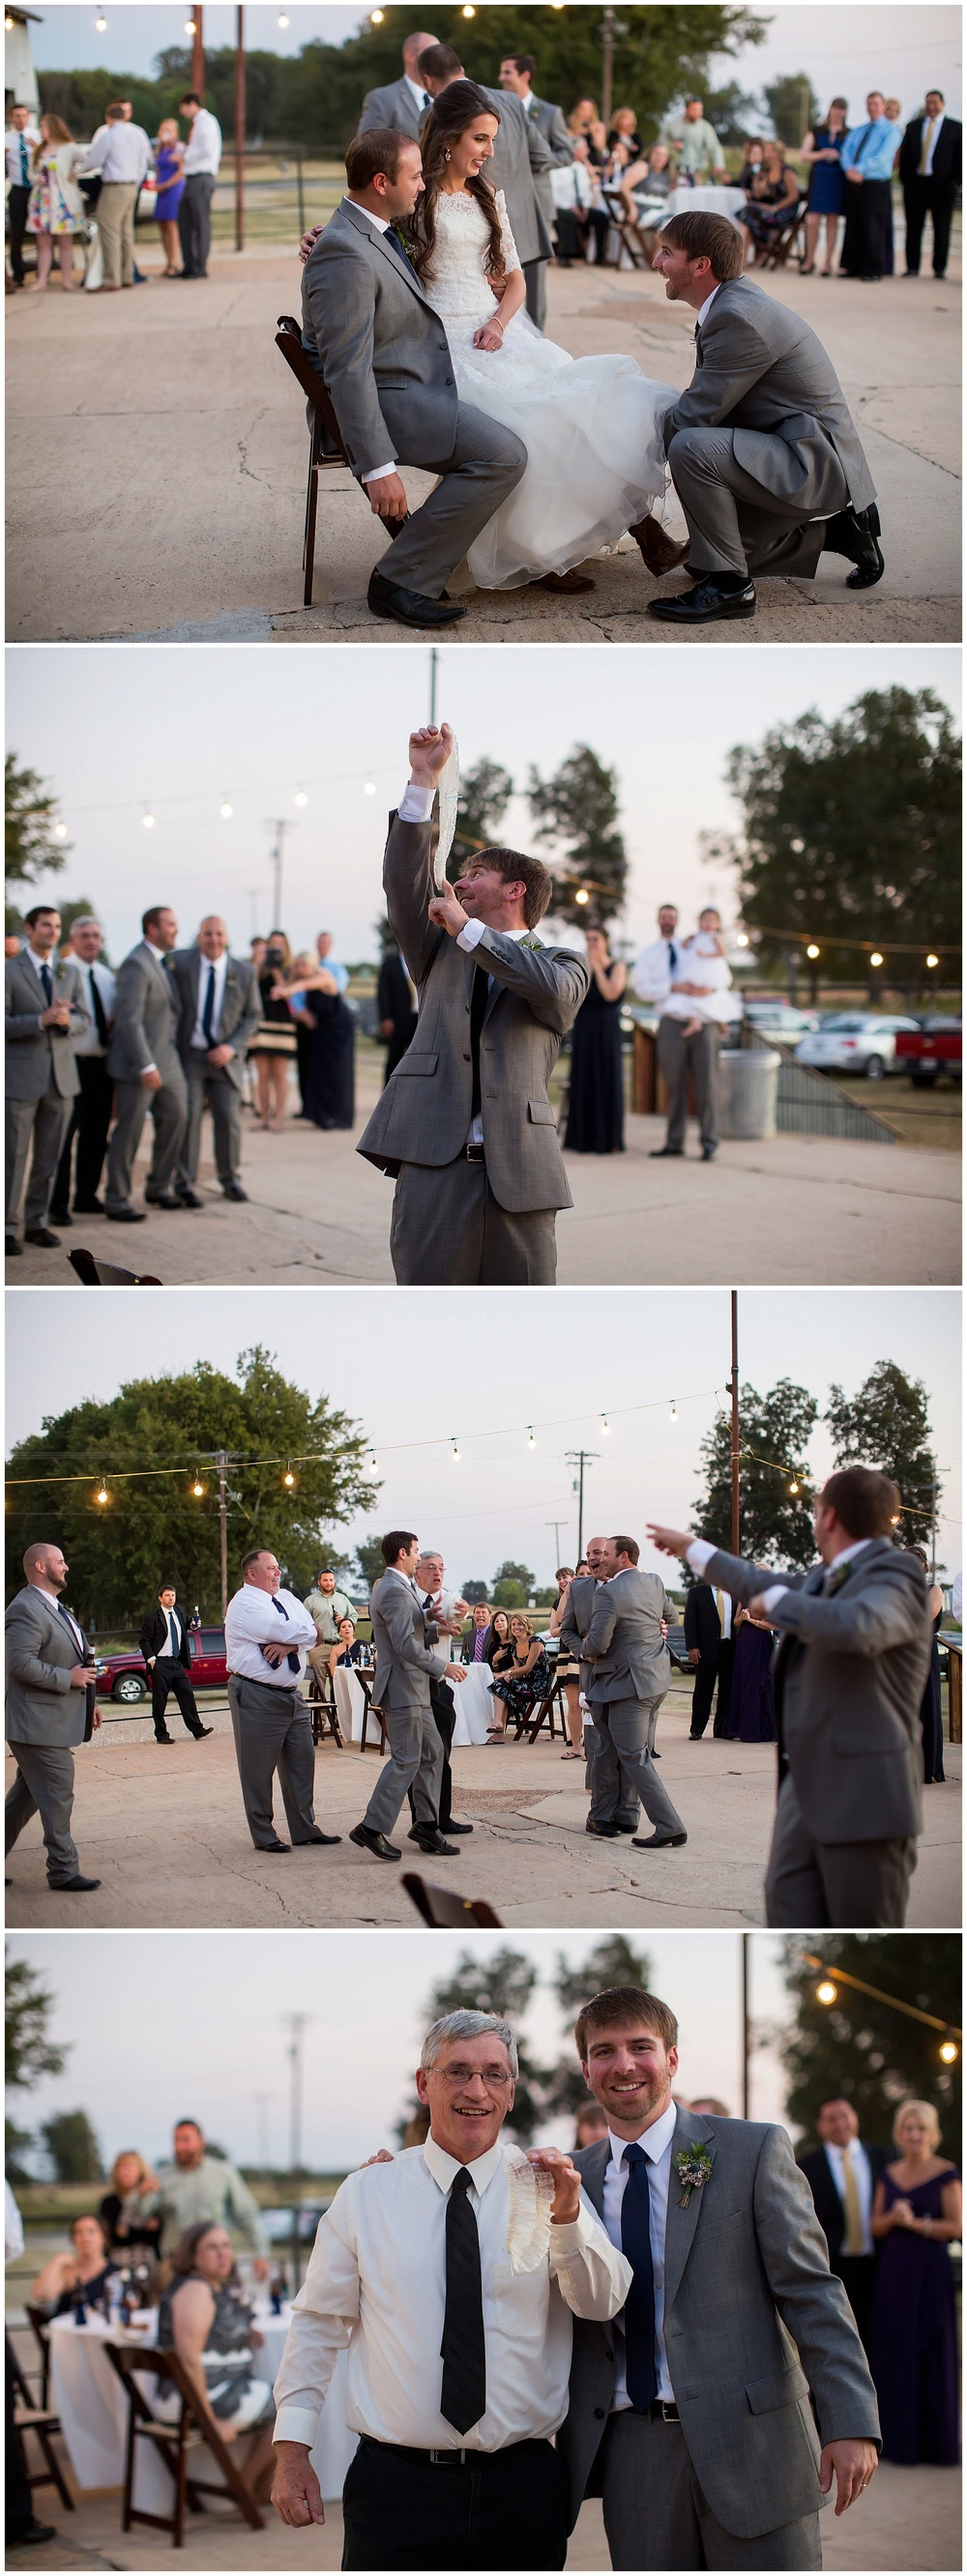 Kinler_DixieGin_Shreveport_Wedding_73.jpg